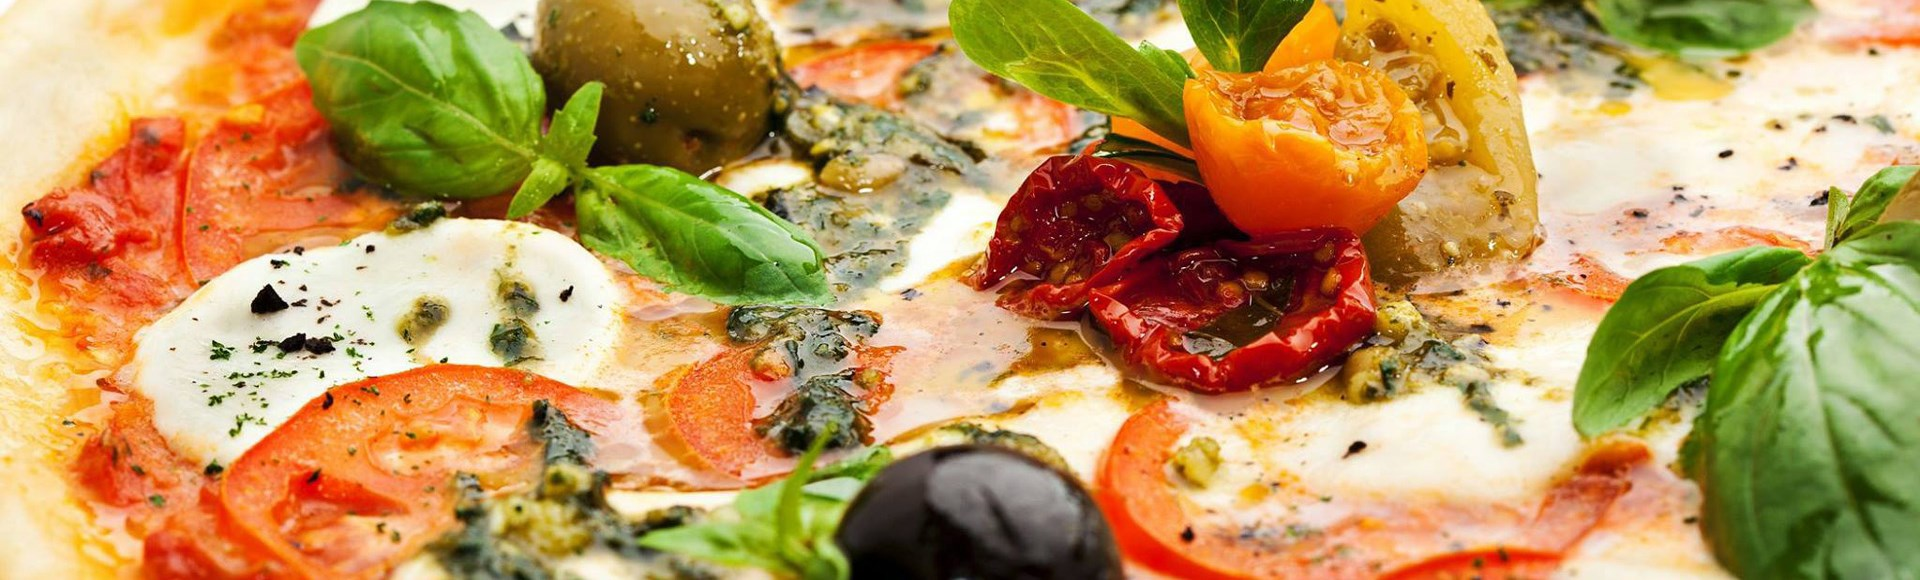 mediterranean-pizza-with-olives-basil-mozzarella-and-cherry-tomatoes - Private Chef Service For Your Villa Holidays In Santorini, Cyclades, Greece